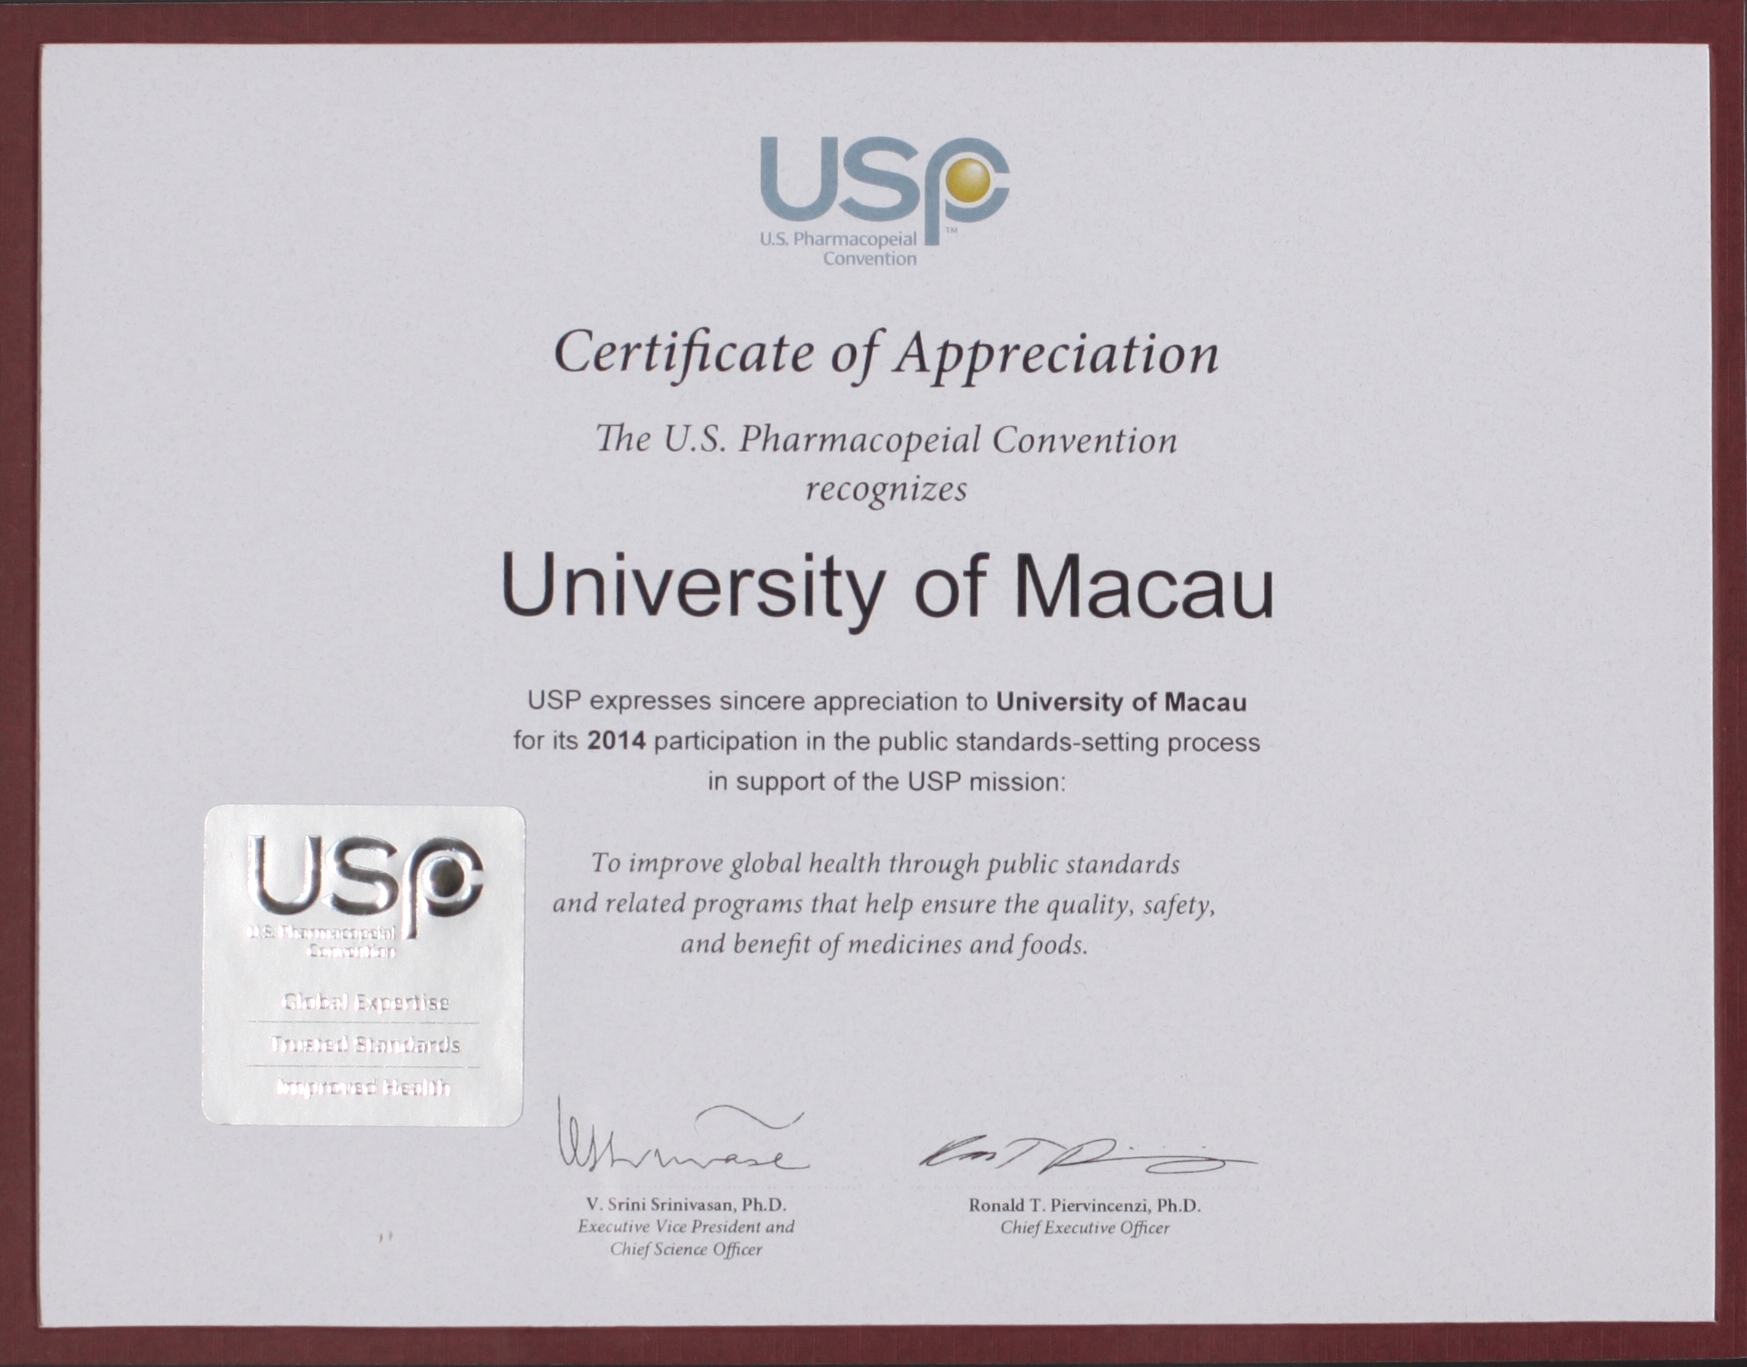 UM receives a certificate of appreciation from the US Pharmacopeial Convention